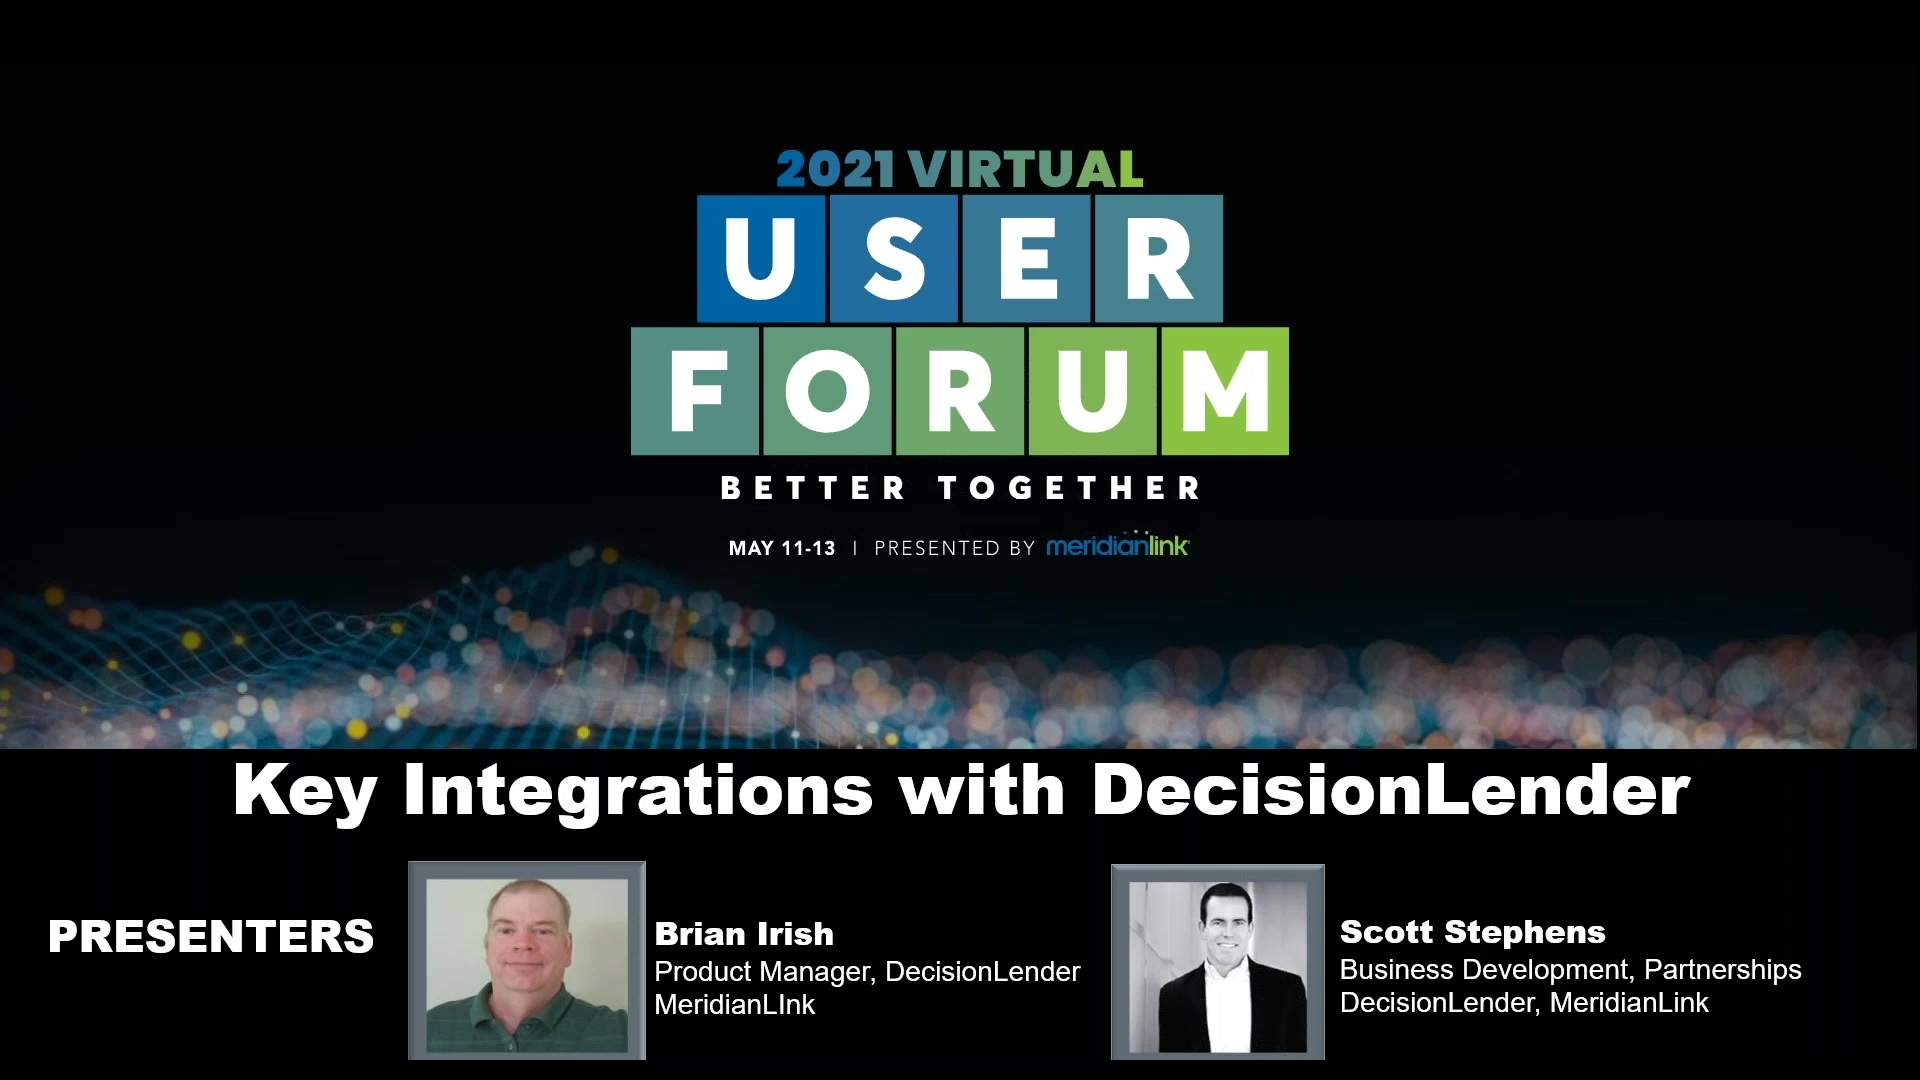 Key Integrations with DecisionLender